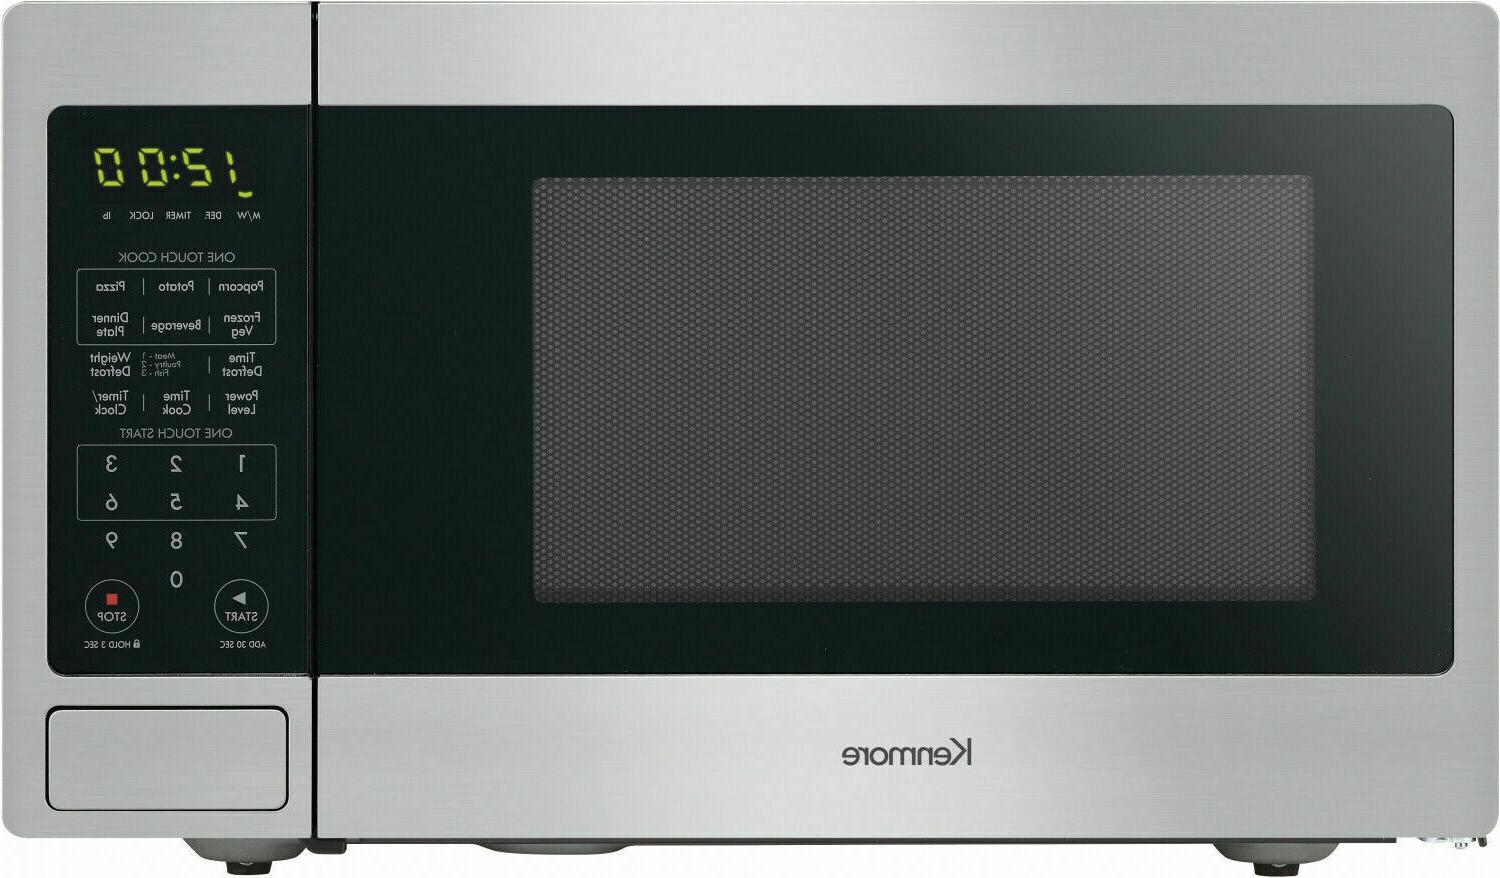 Kenmore 0.9 ft. Countertop Microwave Stainless